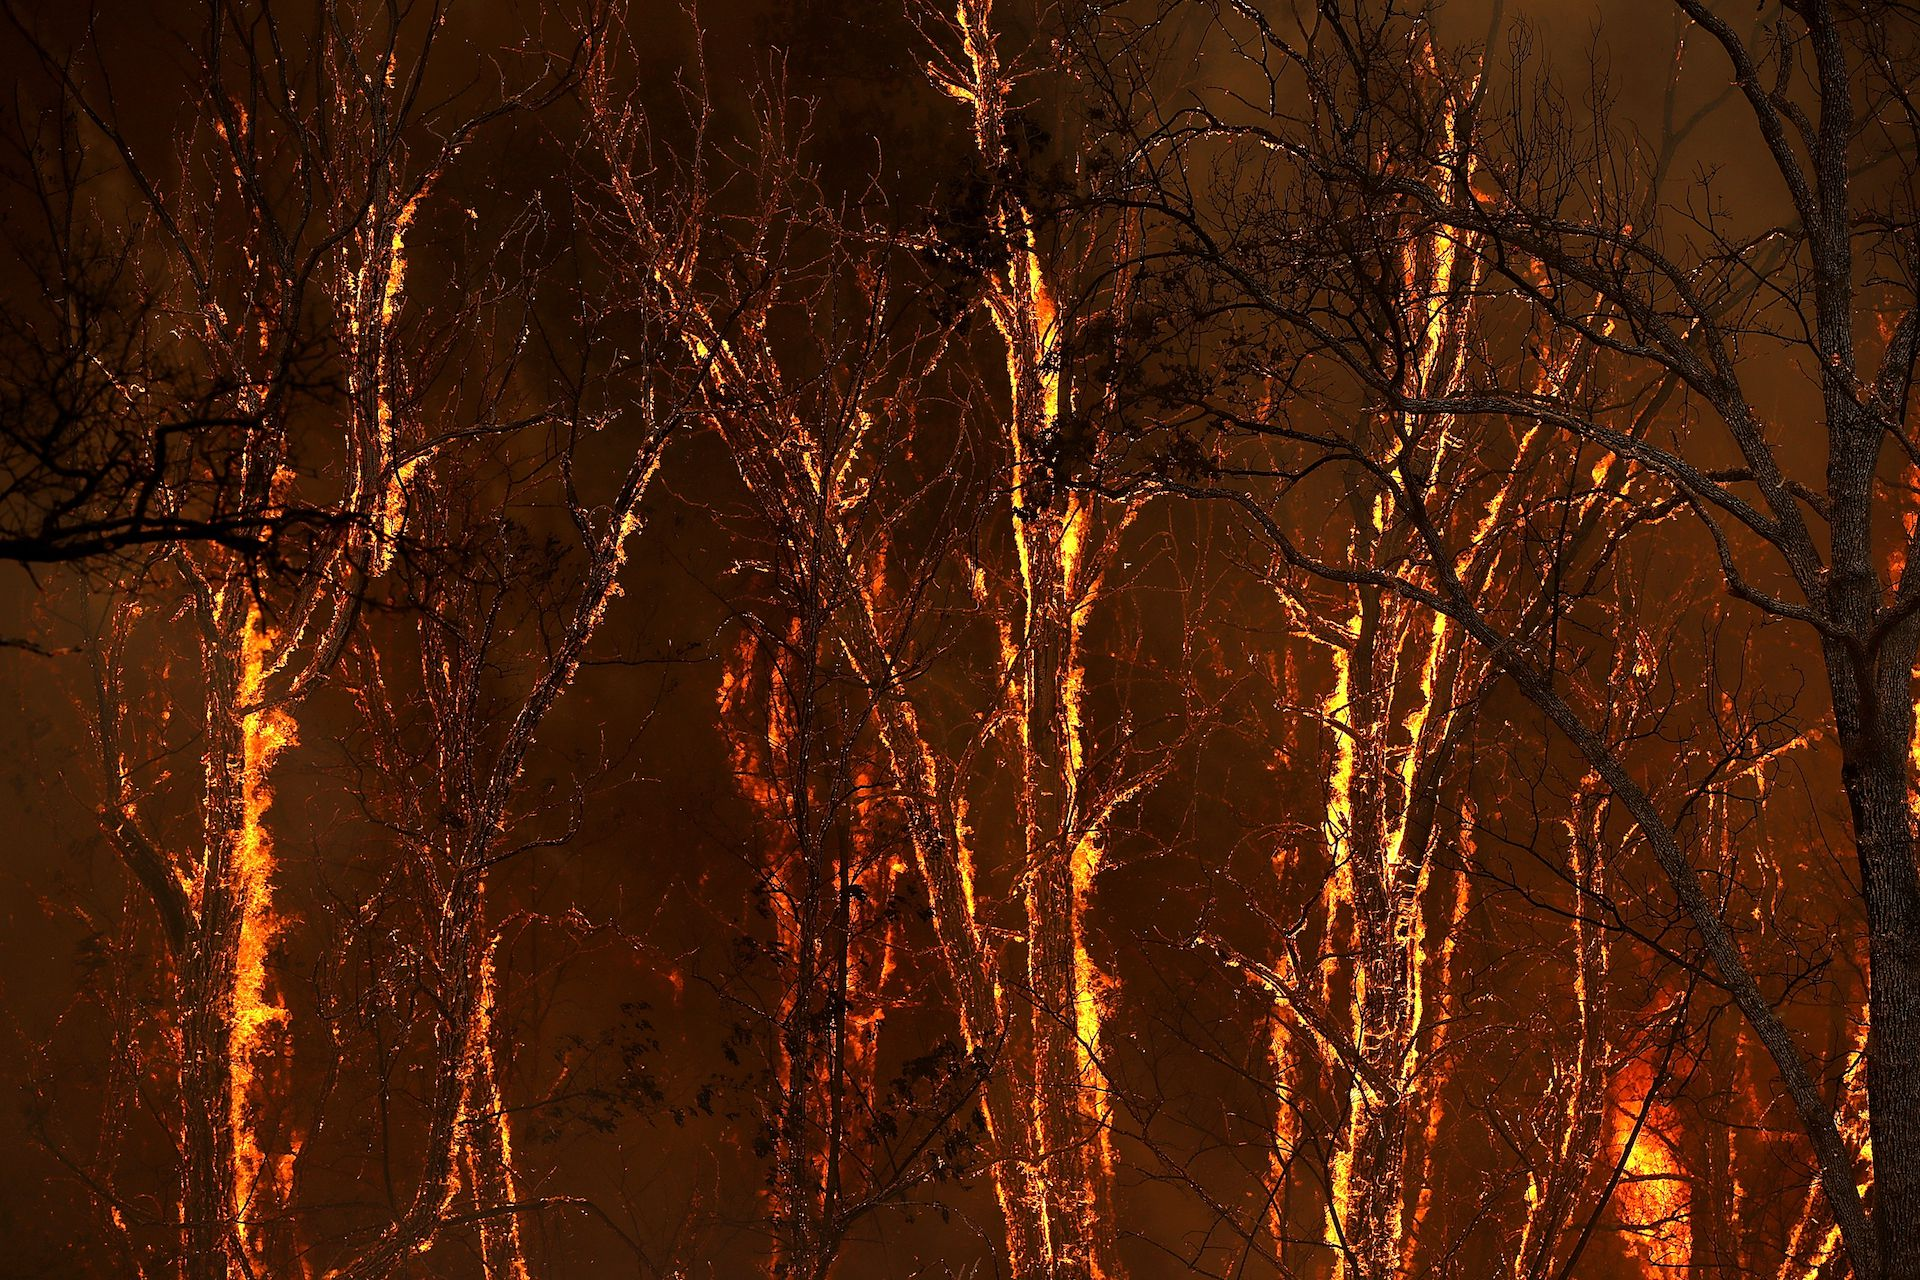 WHISKEYTOWN, CA - JULY 27: Flames from the Carr Fire burns through trees along highway 299 on July 27, 2018 near Whiskeytown, California.